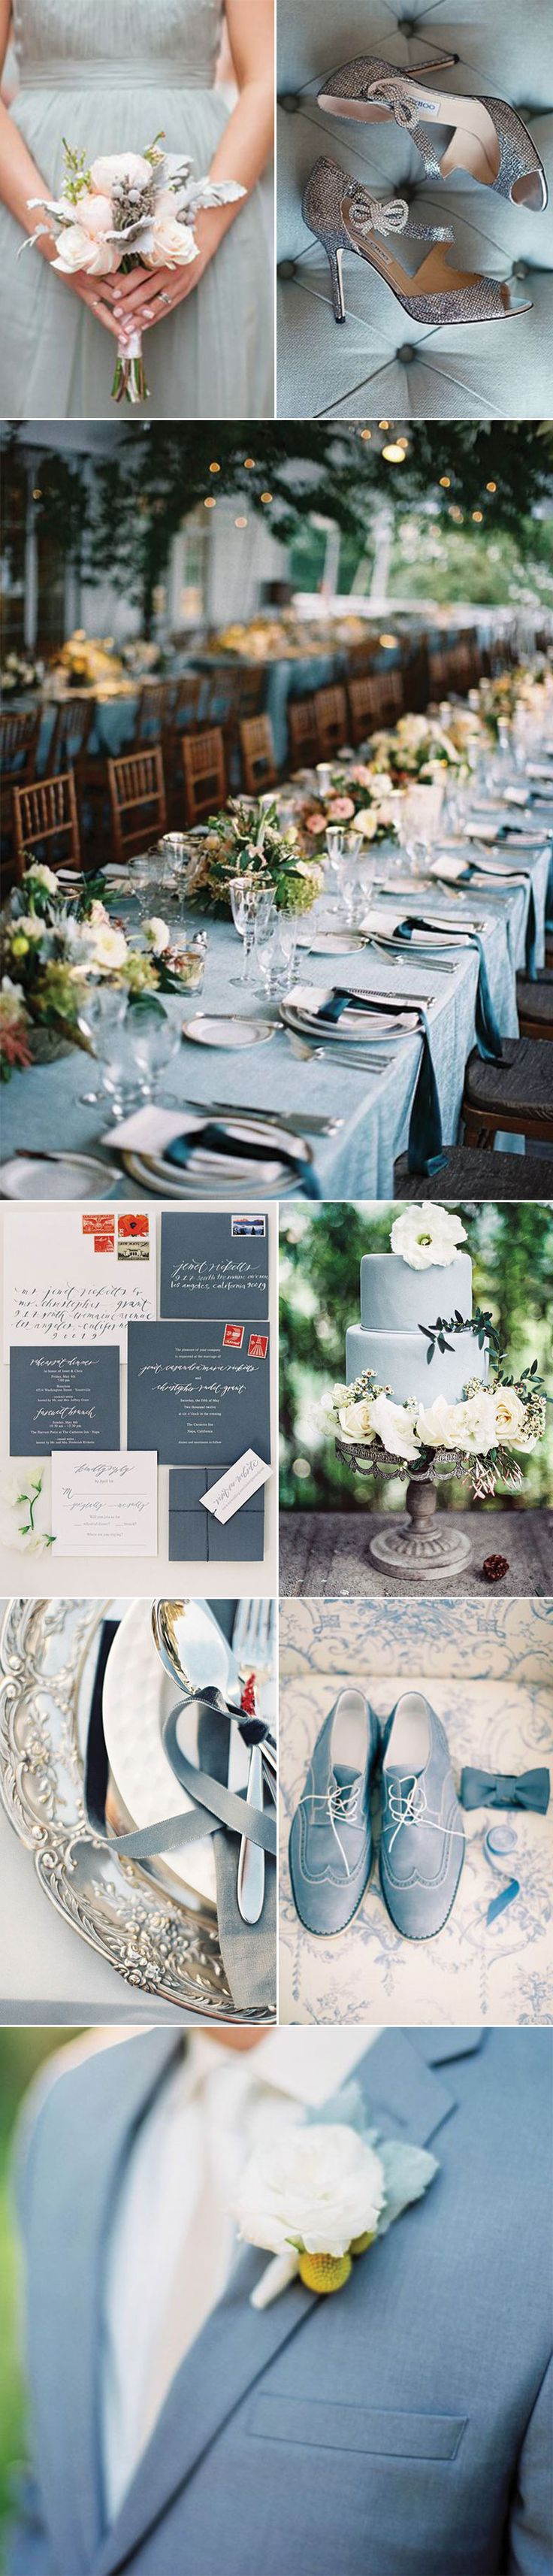 Plan a wedding in Pewter Blue. It pairs beautifully with silvers and navy blues.